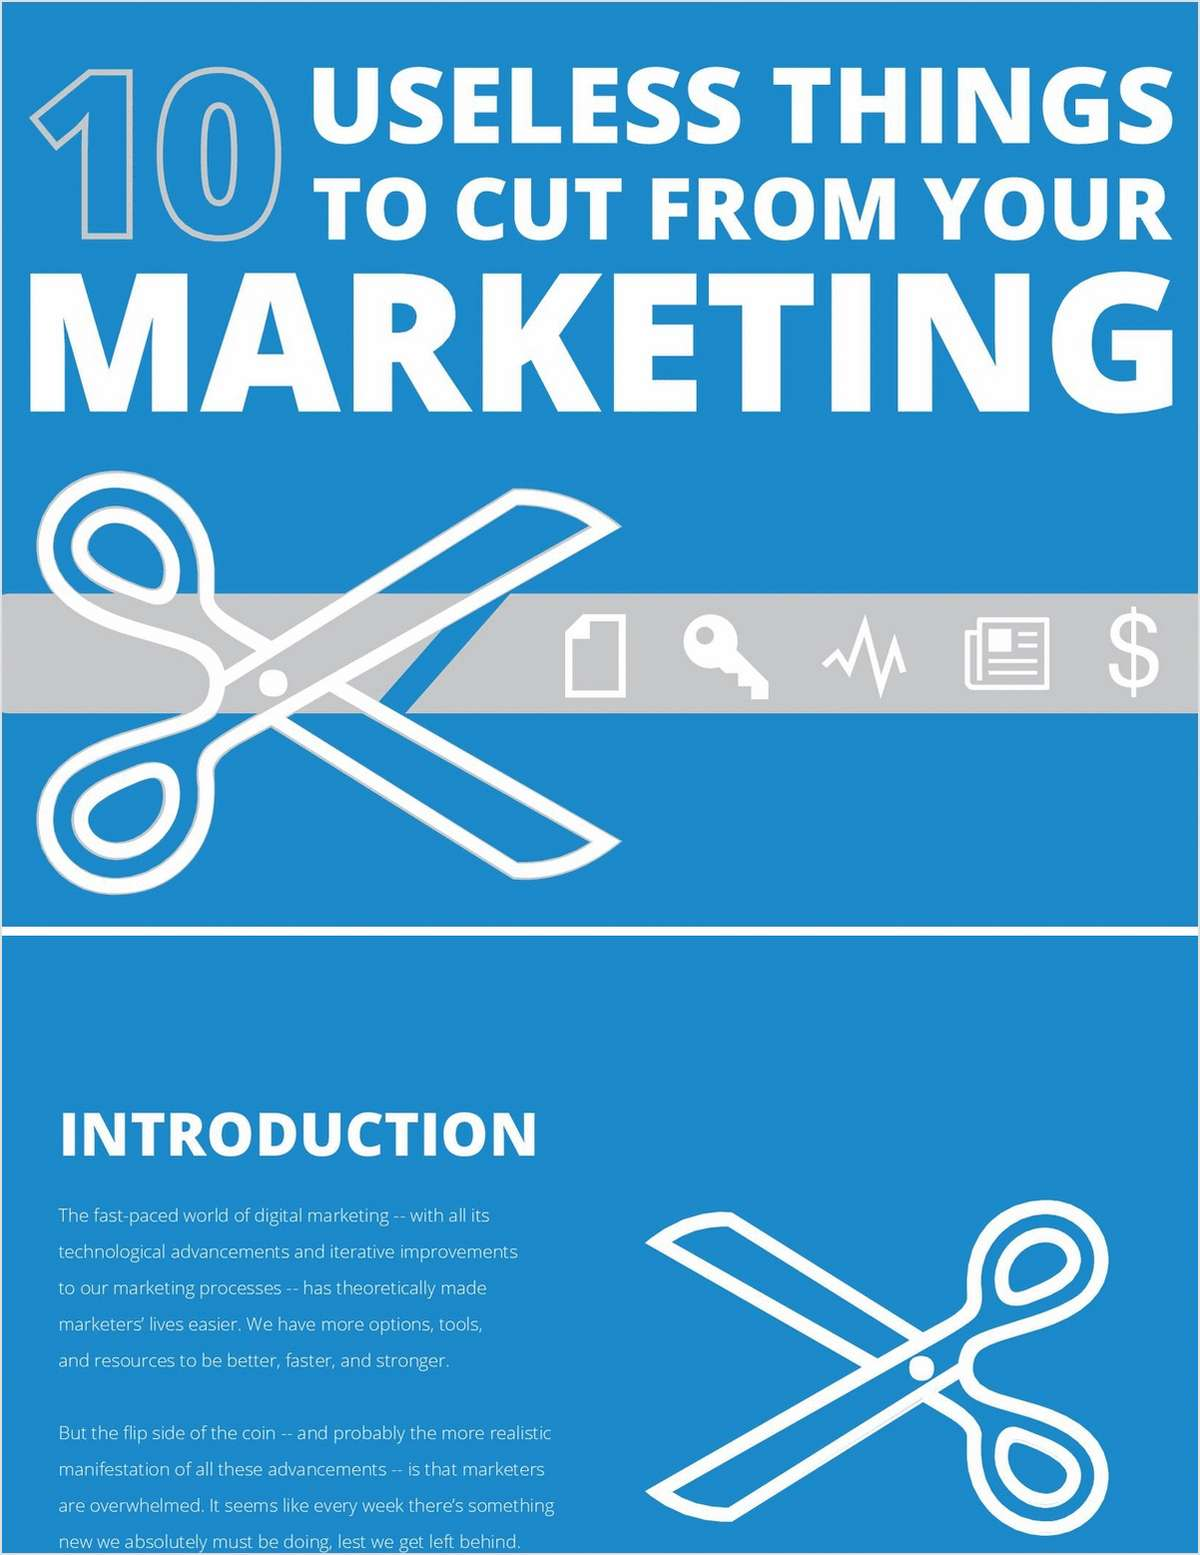 10 Useless Things To Cut From Your Digital Marketing Budget Right Now